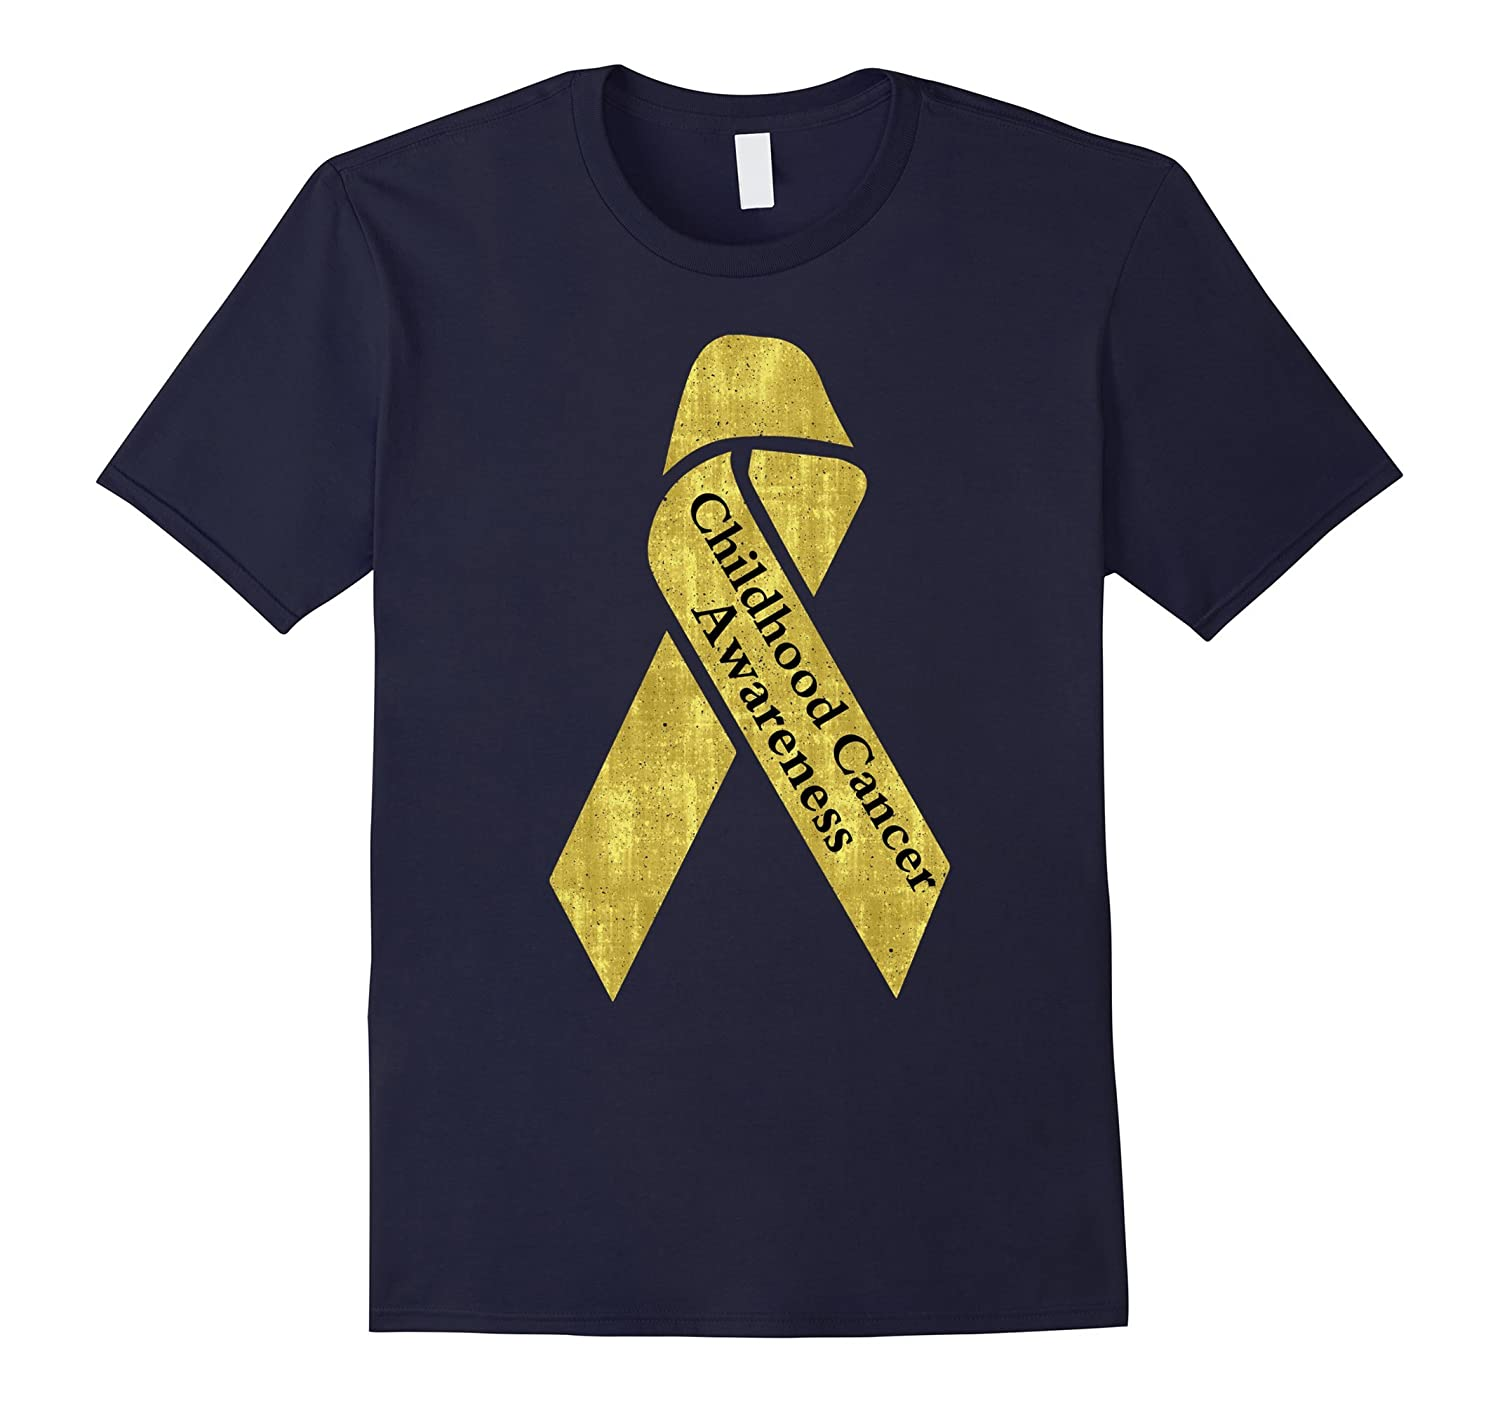 Childhood Cancer Awareness T shirt - Go Gold Tshirt-FL